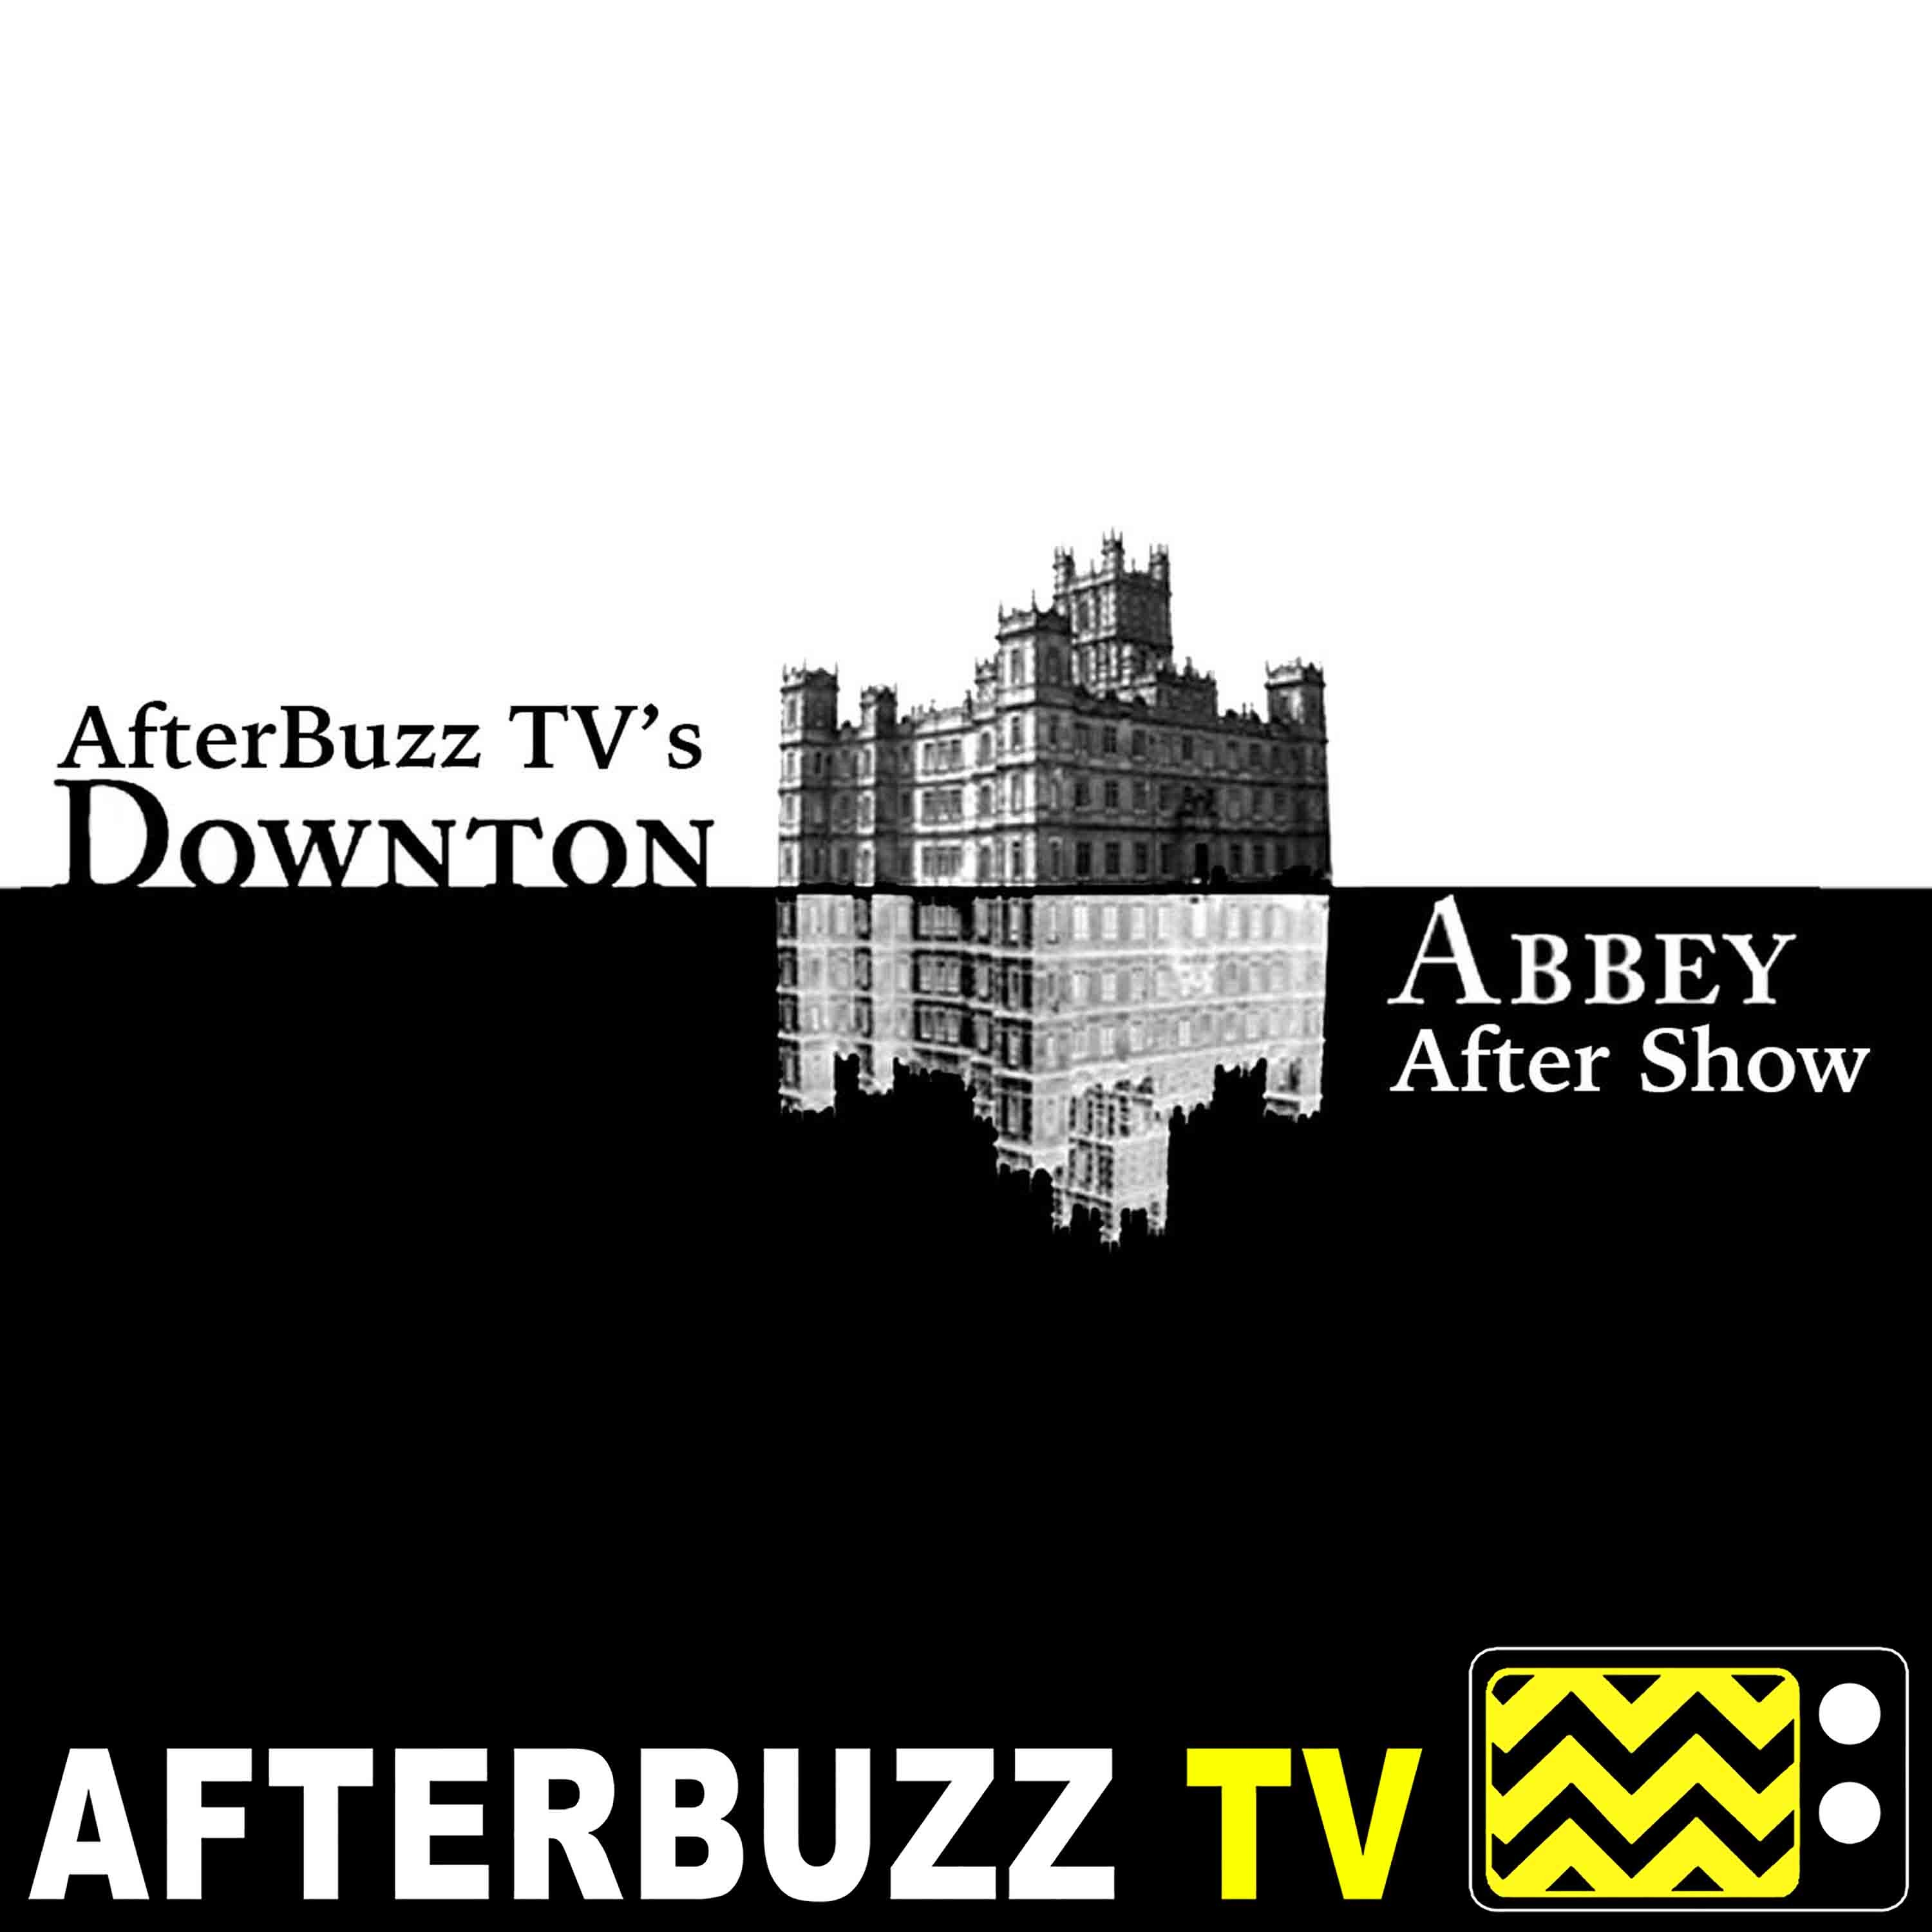 Downton Abbey UK S:6 | Episode 3 | AfterBuzz TV AfterShow